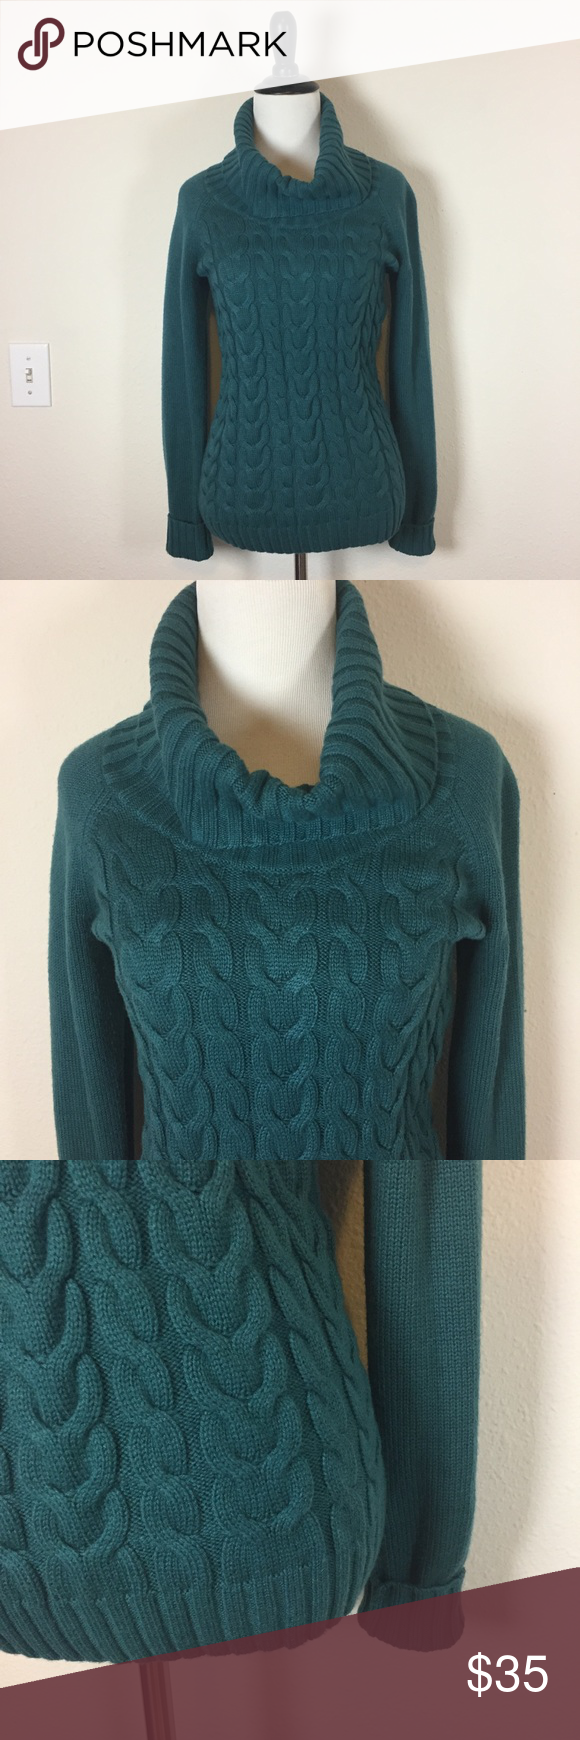 Banana Republic green wool cowl neck sweater XS | Green wool, Cowl ...